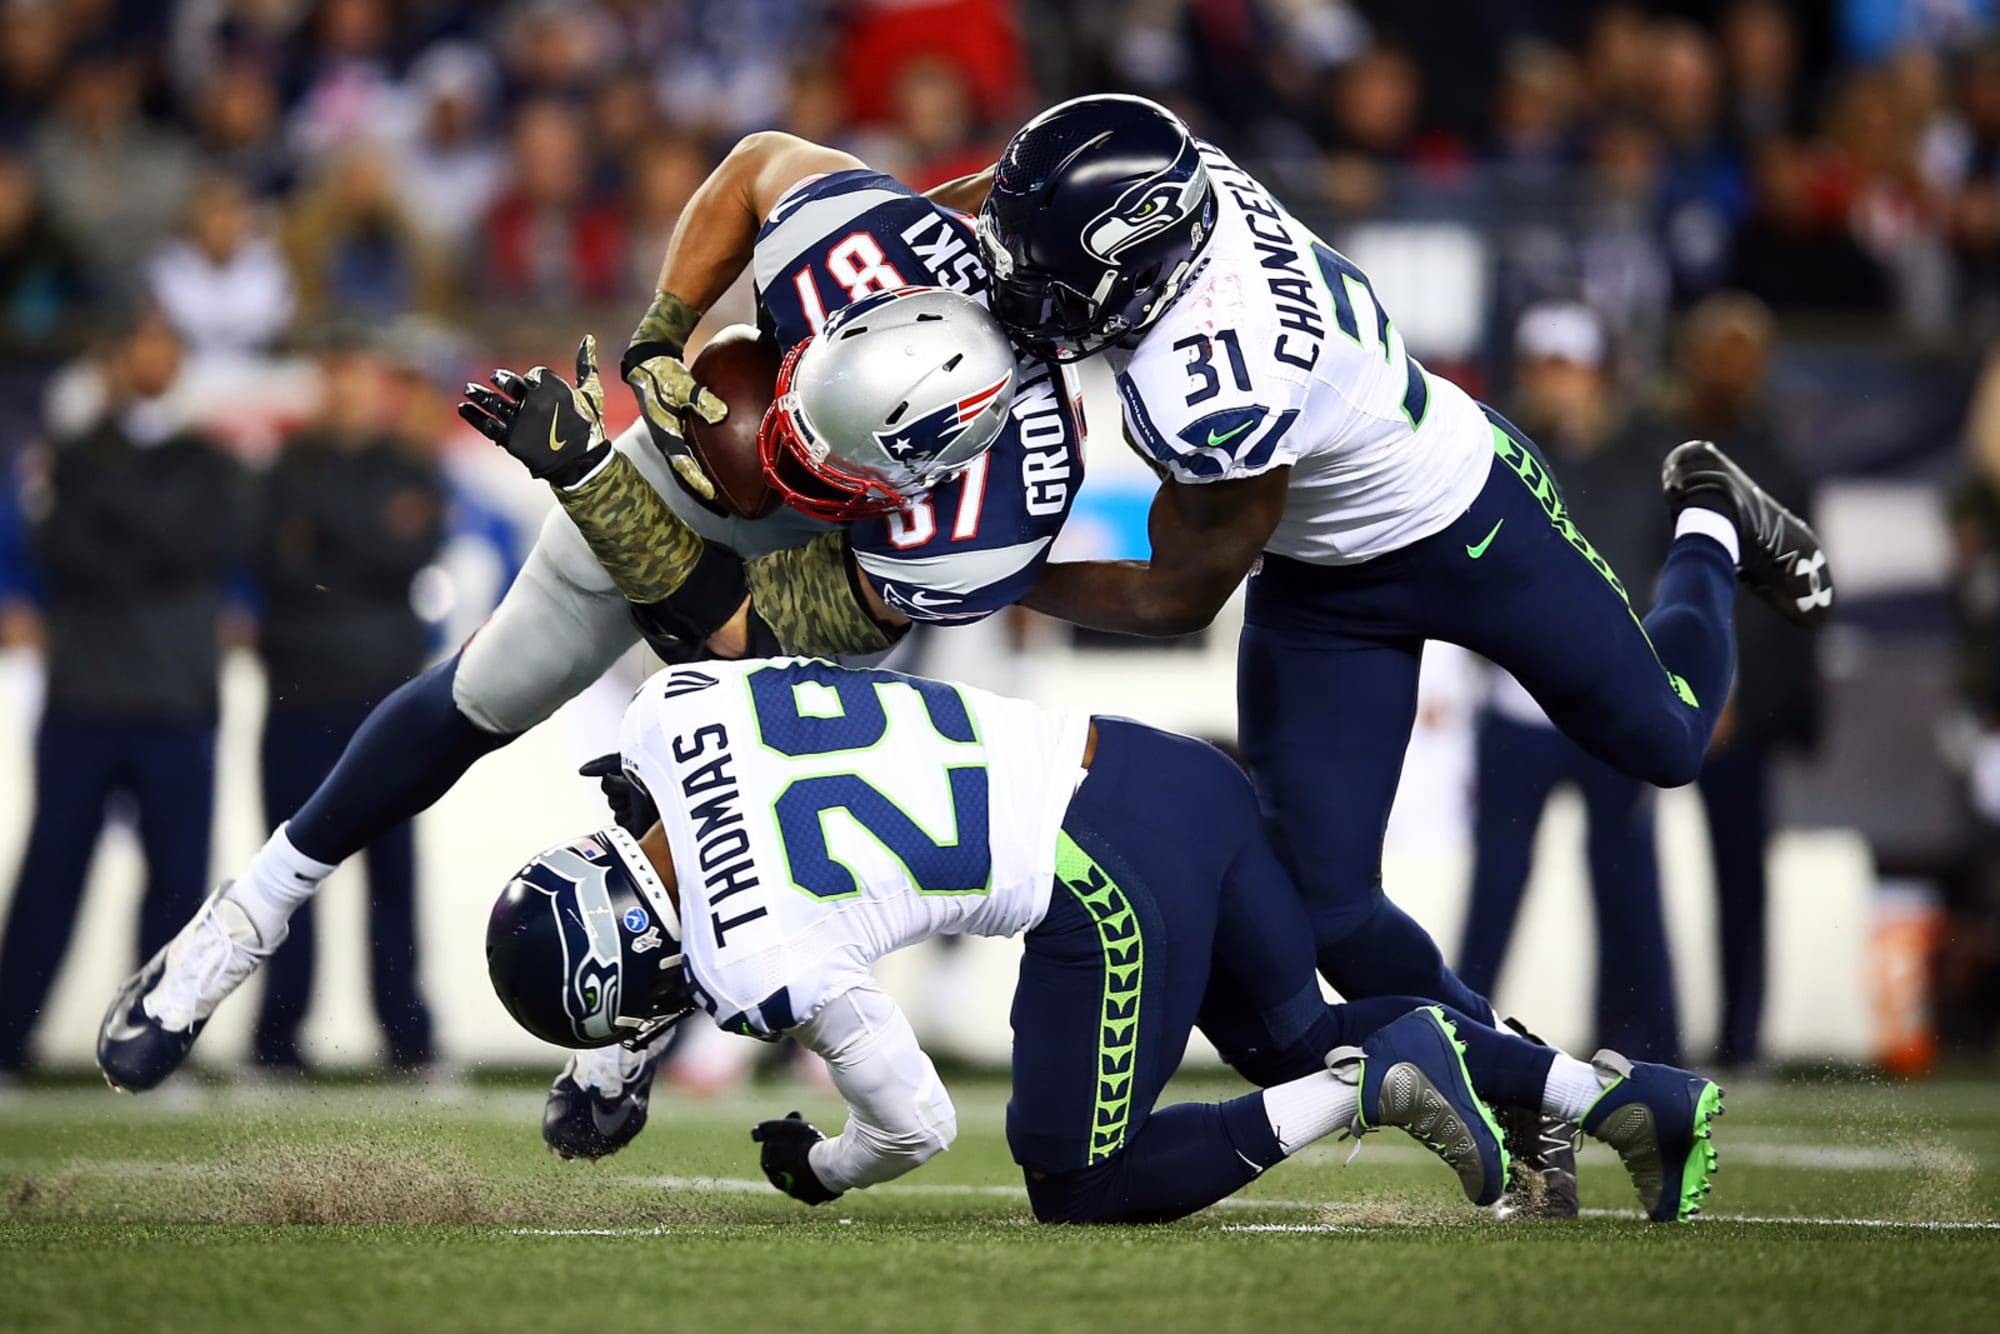 Seahawks versus Patriots: How to watch, stream and listen